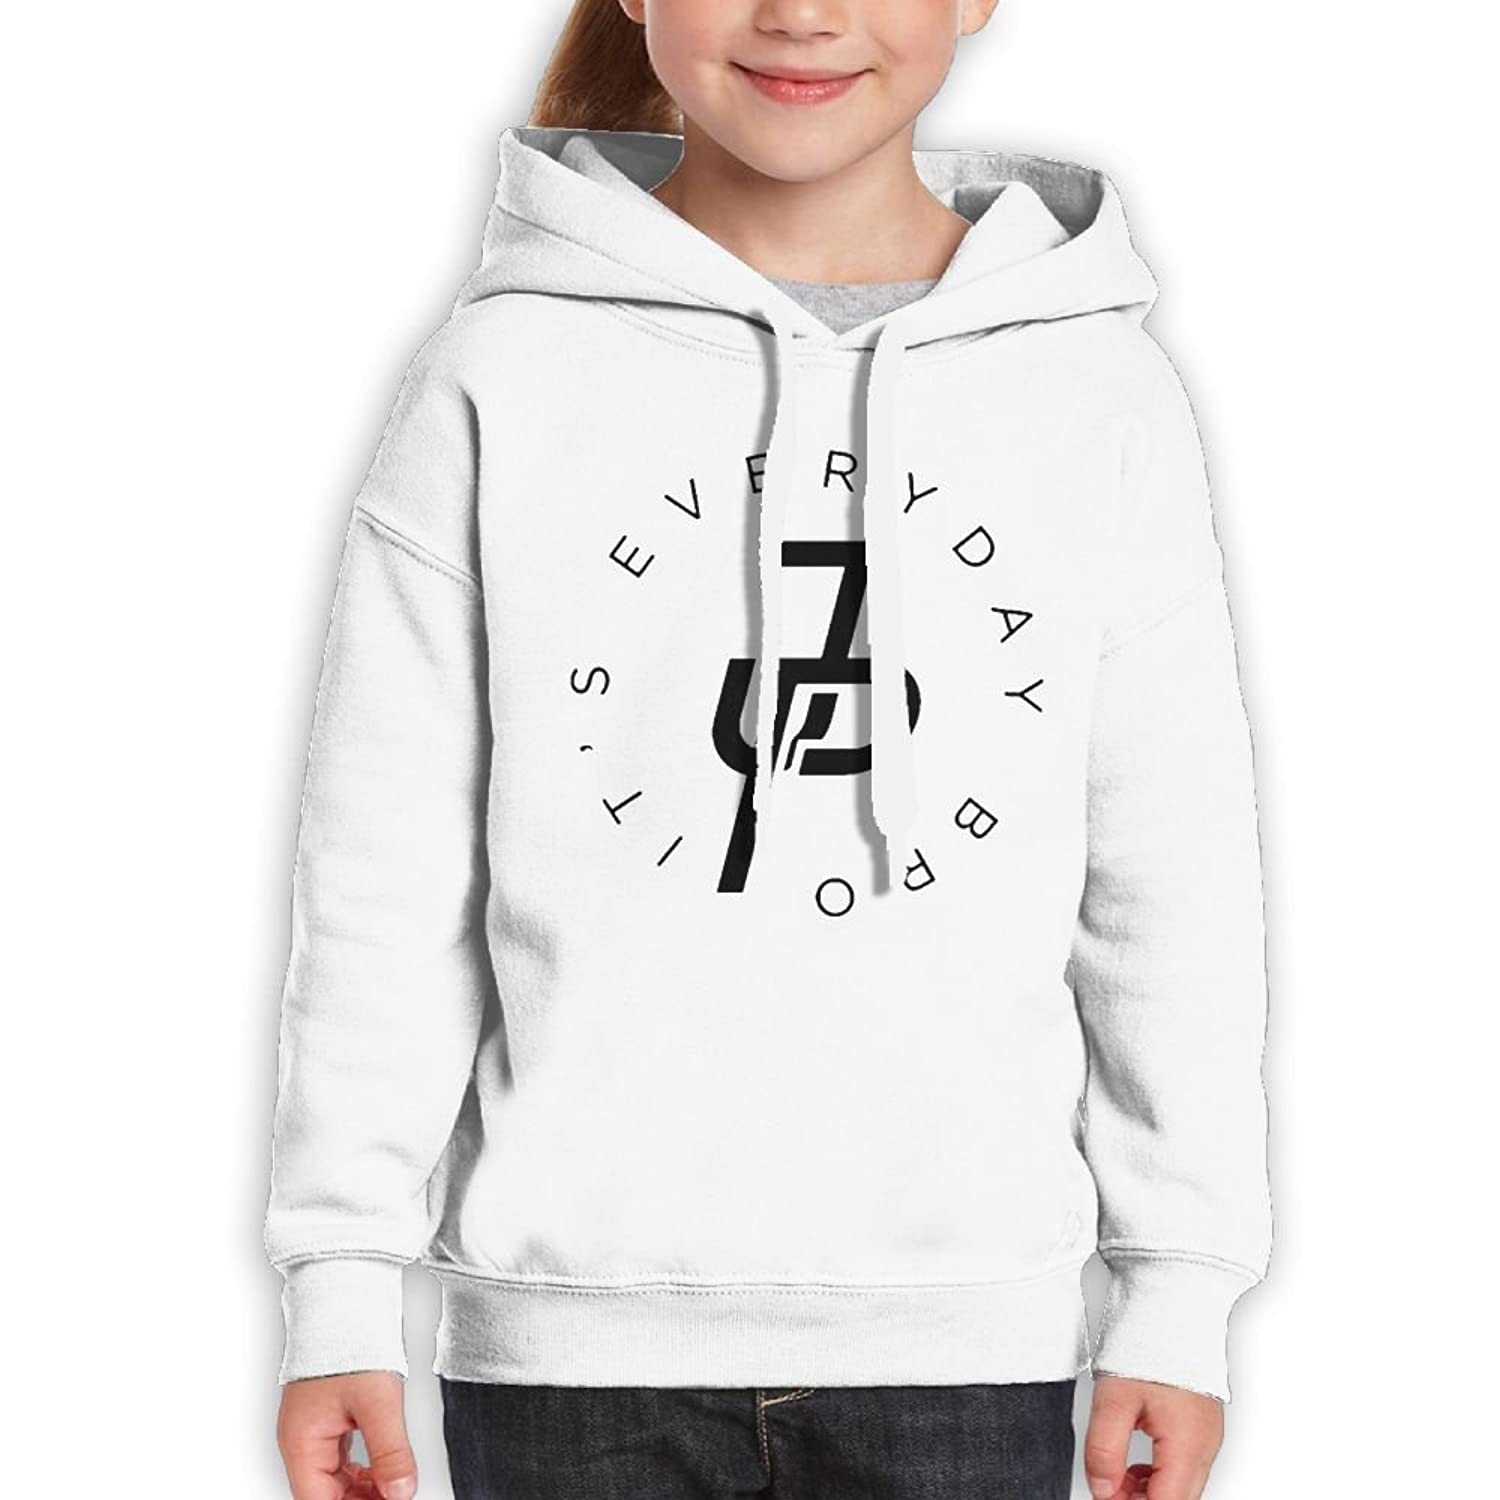 Addie E. Neff Pullover Team 10 Ten Jake Paul It's Every Day Boys,Girls,Youth Fashion Sweatshirt Pocket Hoodie White